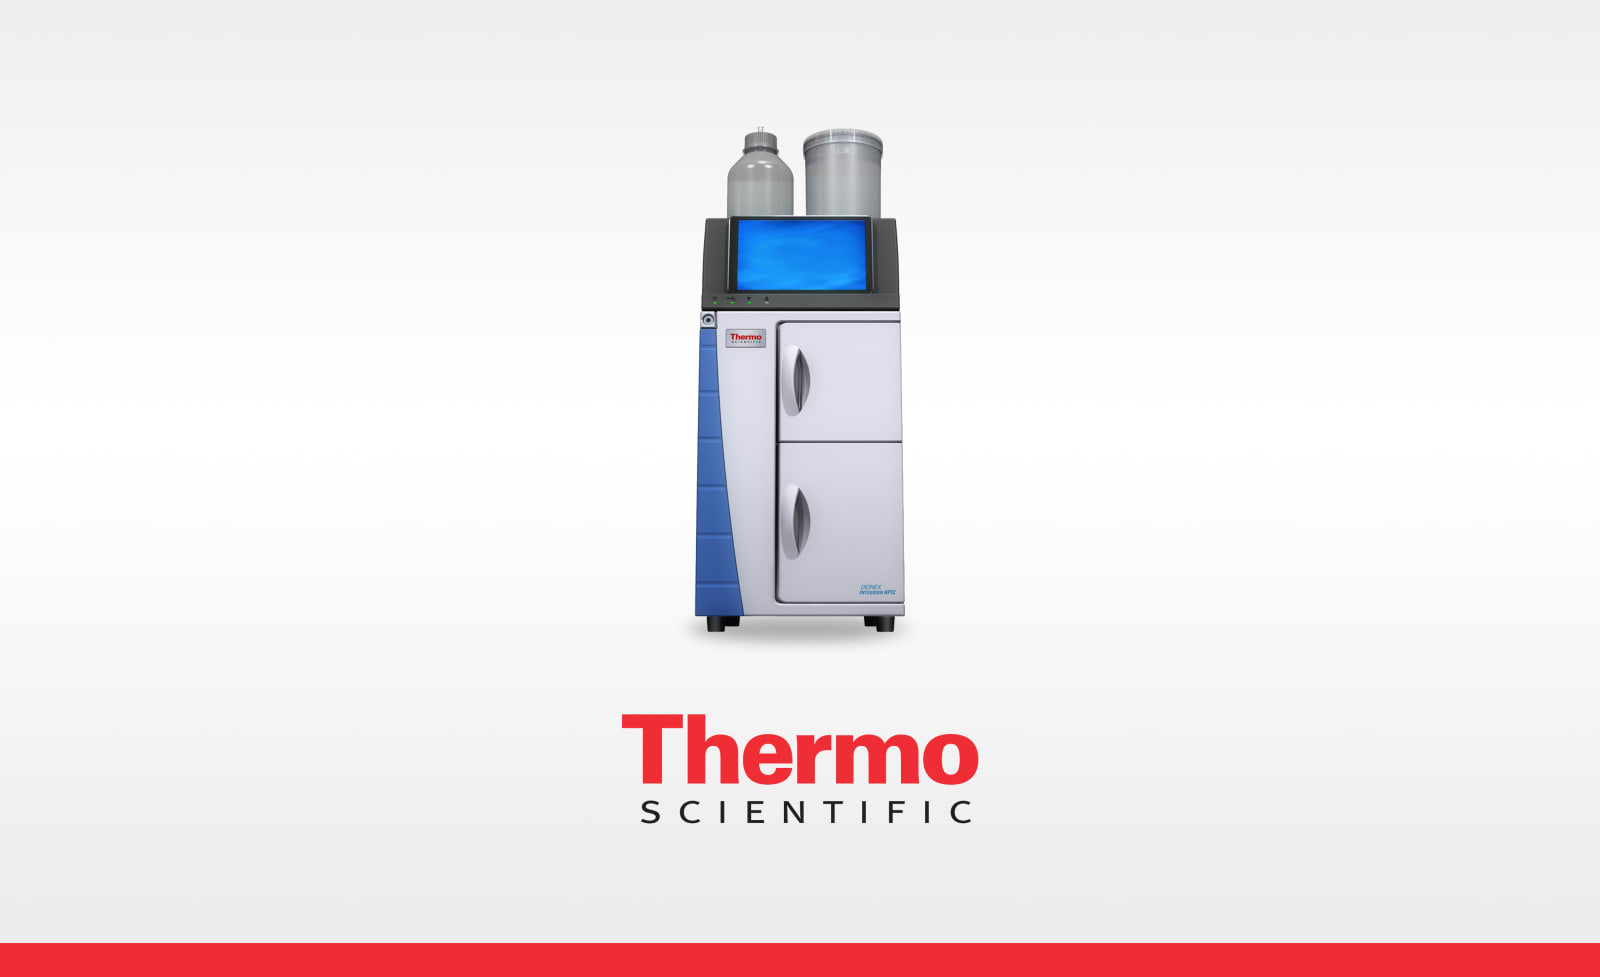 Thermo Scientific Branding